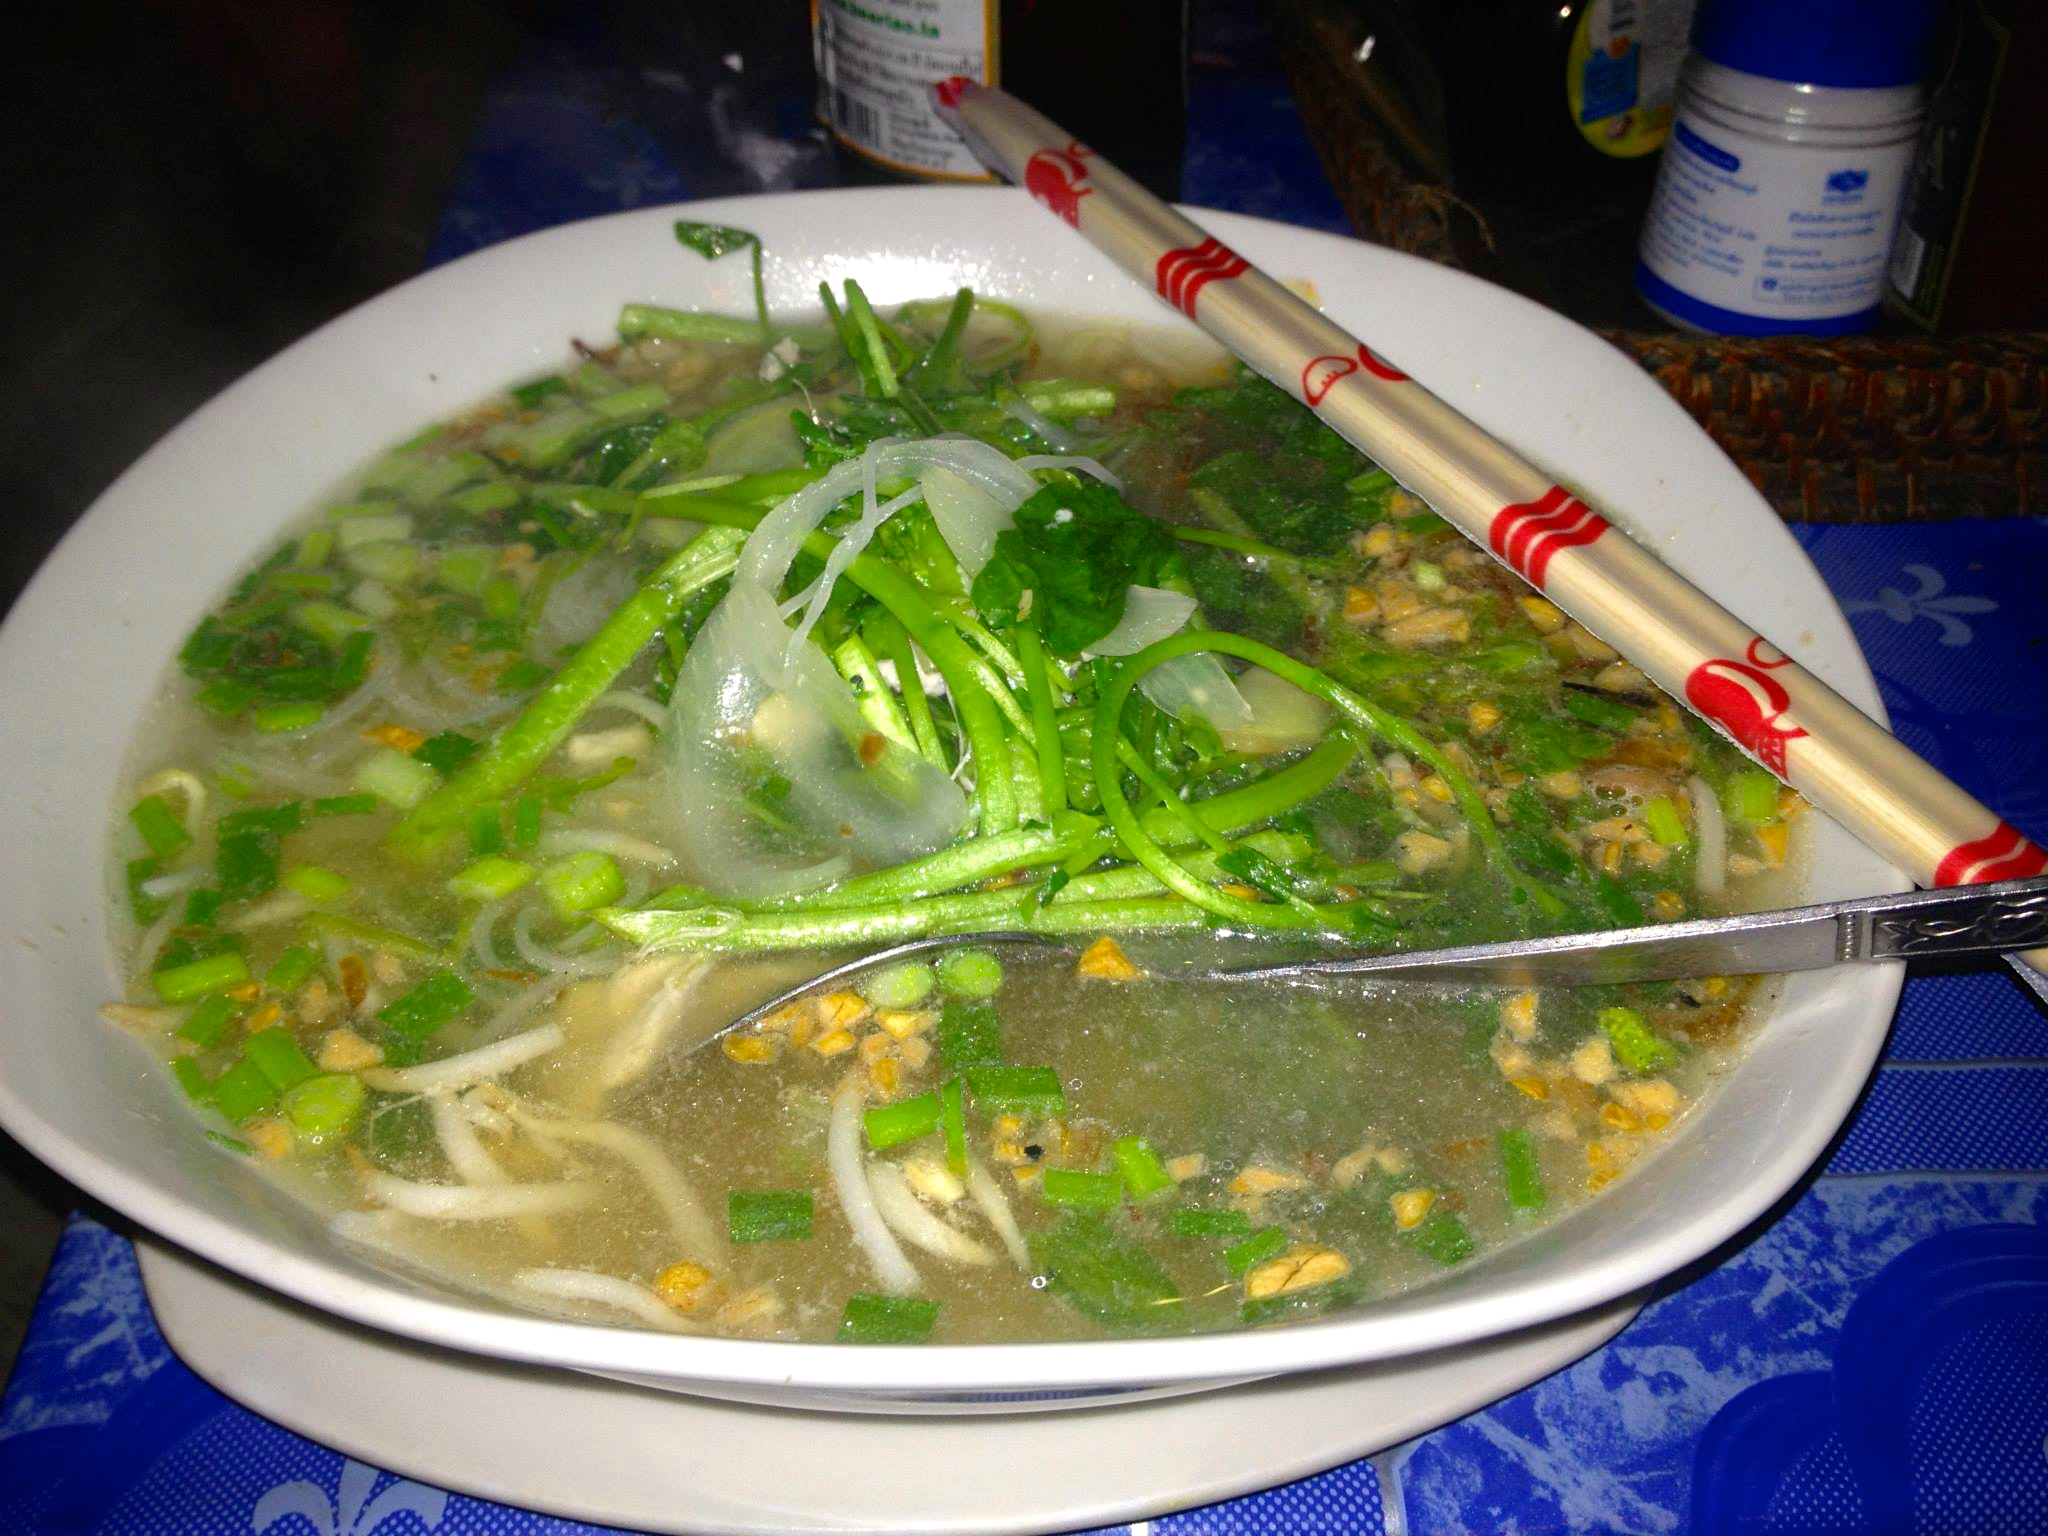 Pho - the best $1 soup you'll ever have you in your life